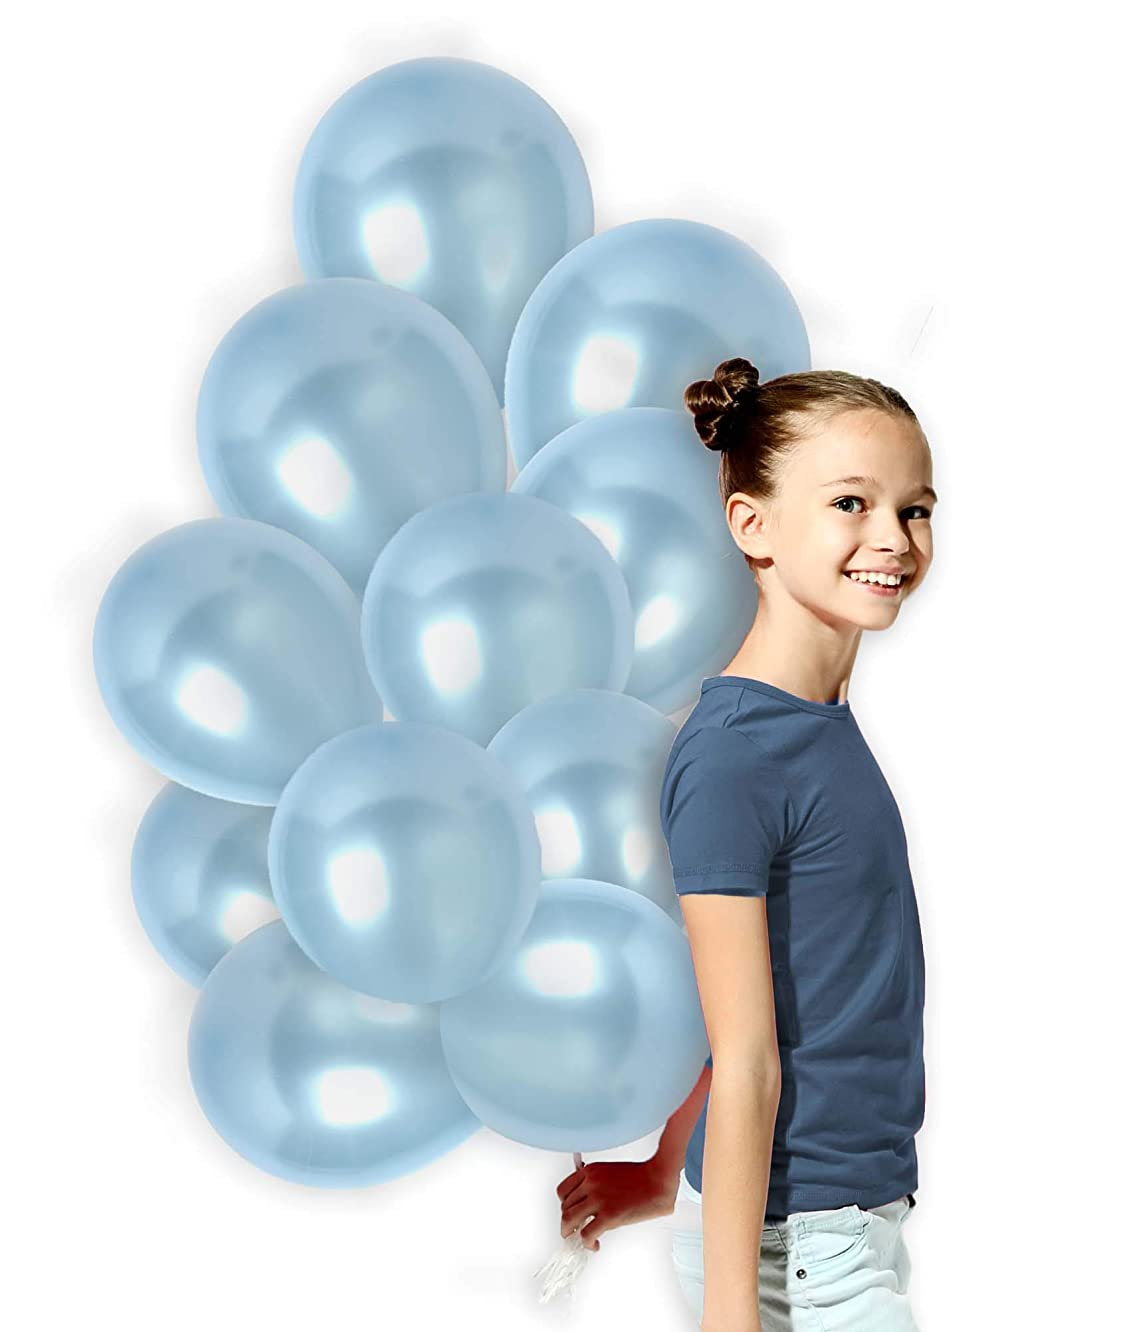 Metallic Light Baby Blue 12 Inch Latex Pastel Balloons with Ribbons for Gender Reveal Wedding Bridal Shower and Birthday Party Pearl Decorations (100 Pack)